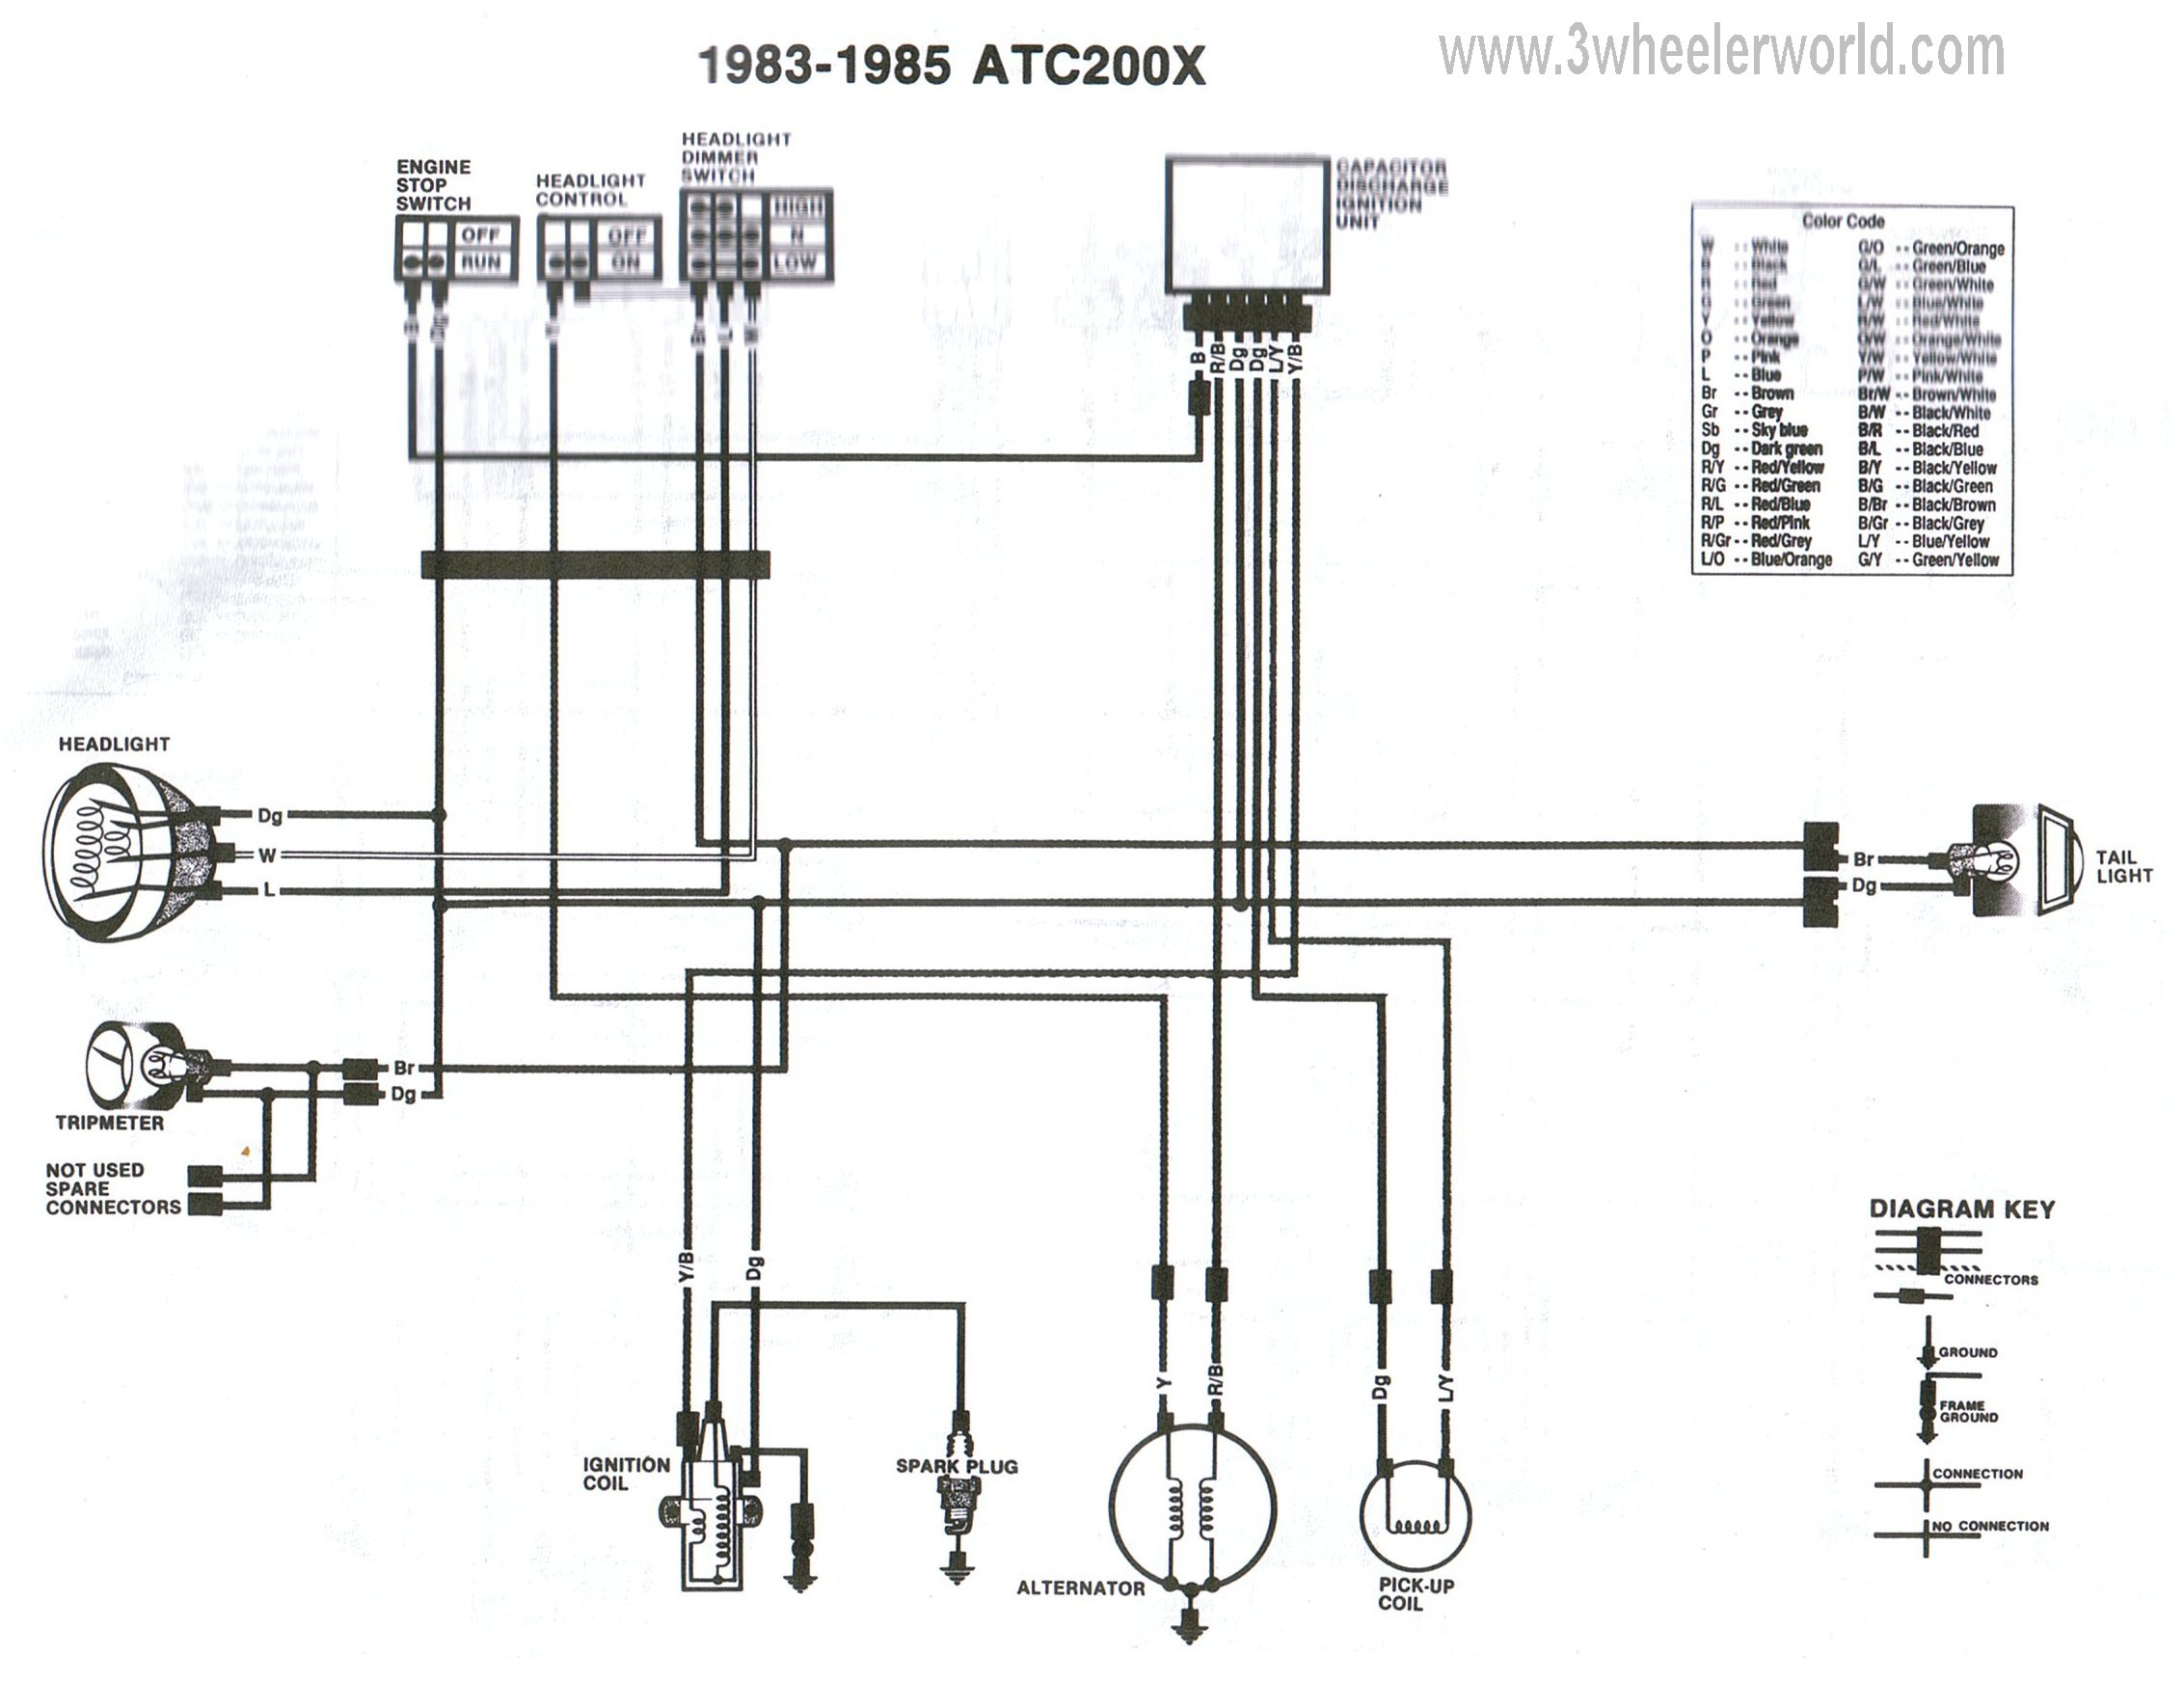 ATC200Xx83Thru85 3 wheeler world tech help honda wiring diagrams Honda Engine Wiring Diagram at alyssarenee.co